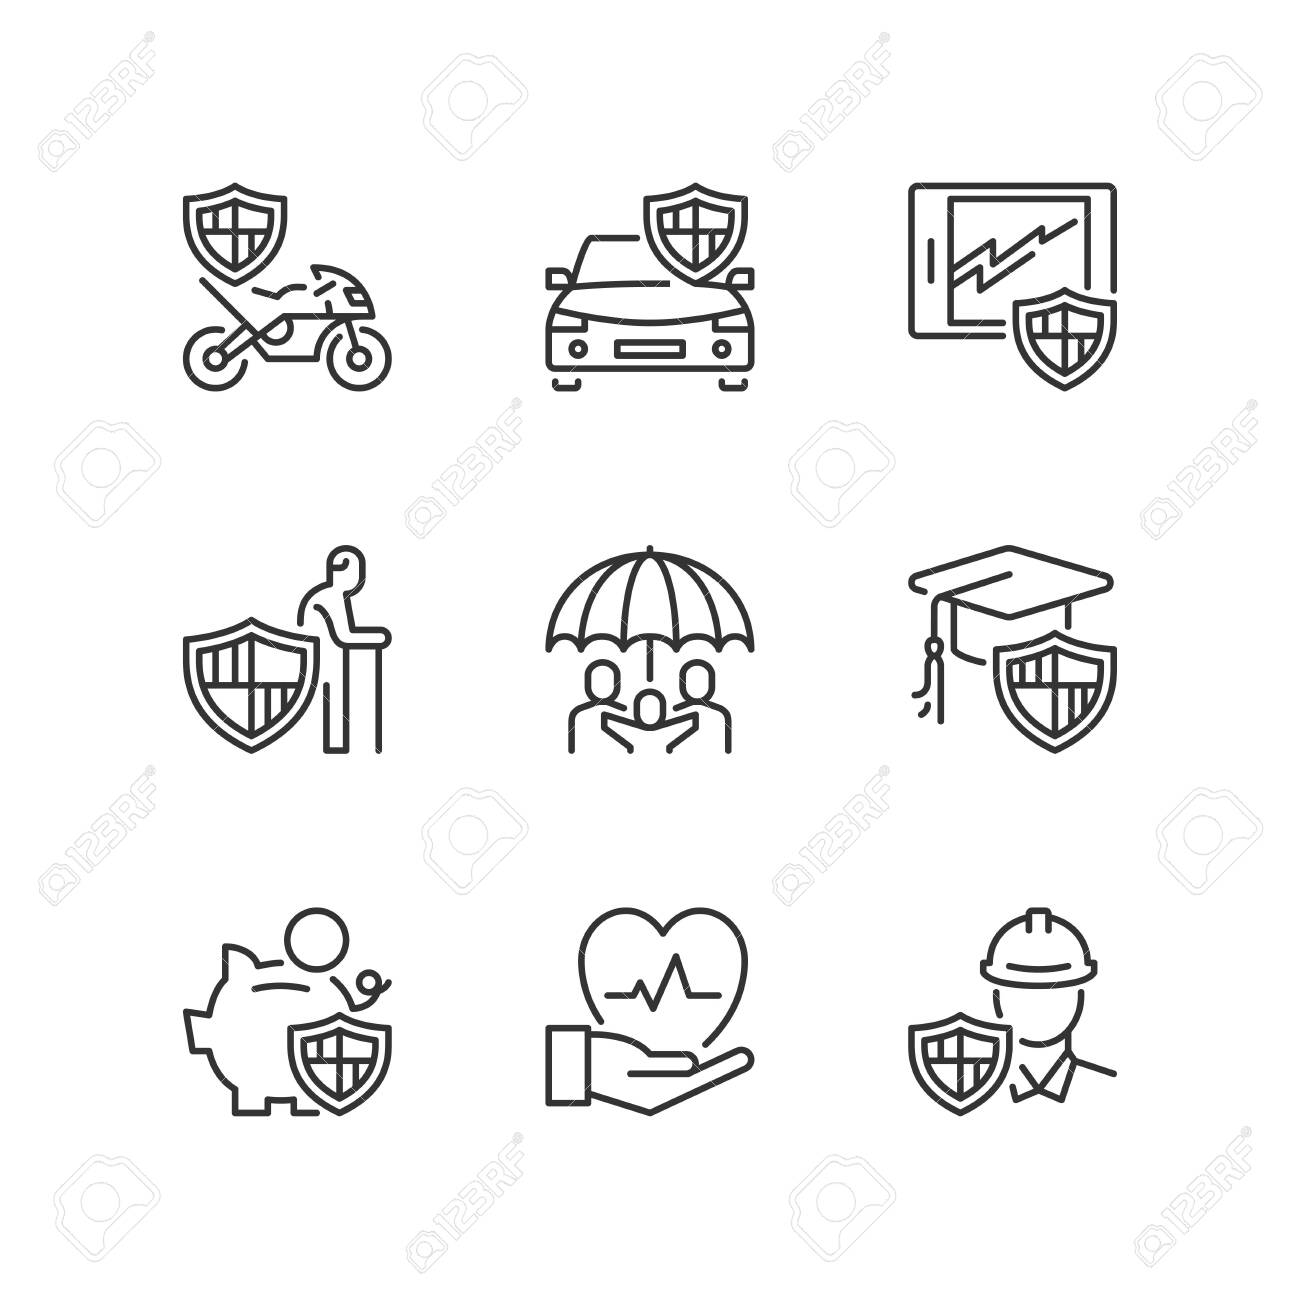 Outline icons about insurance - 122053193